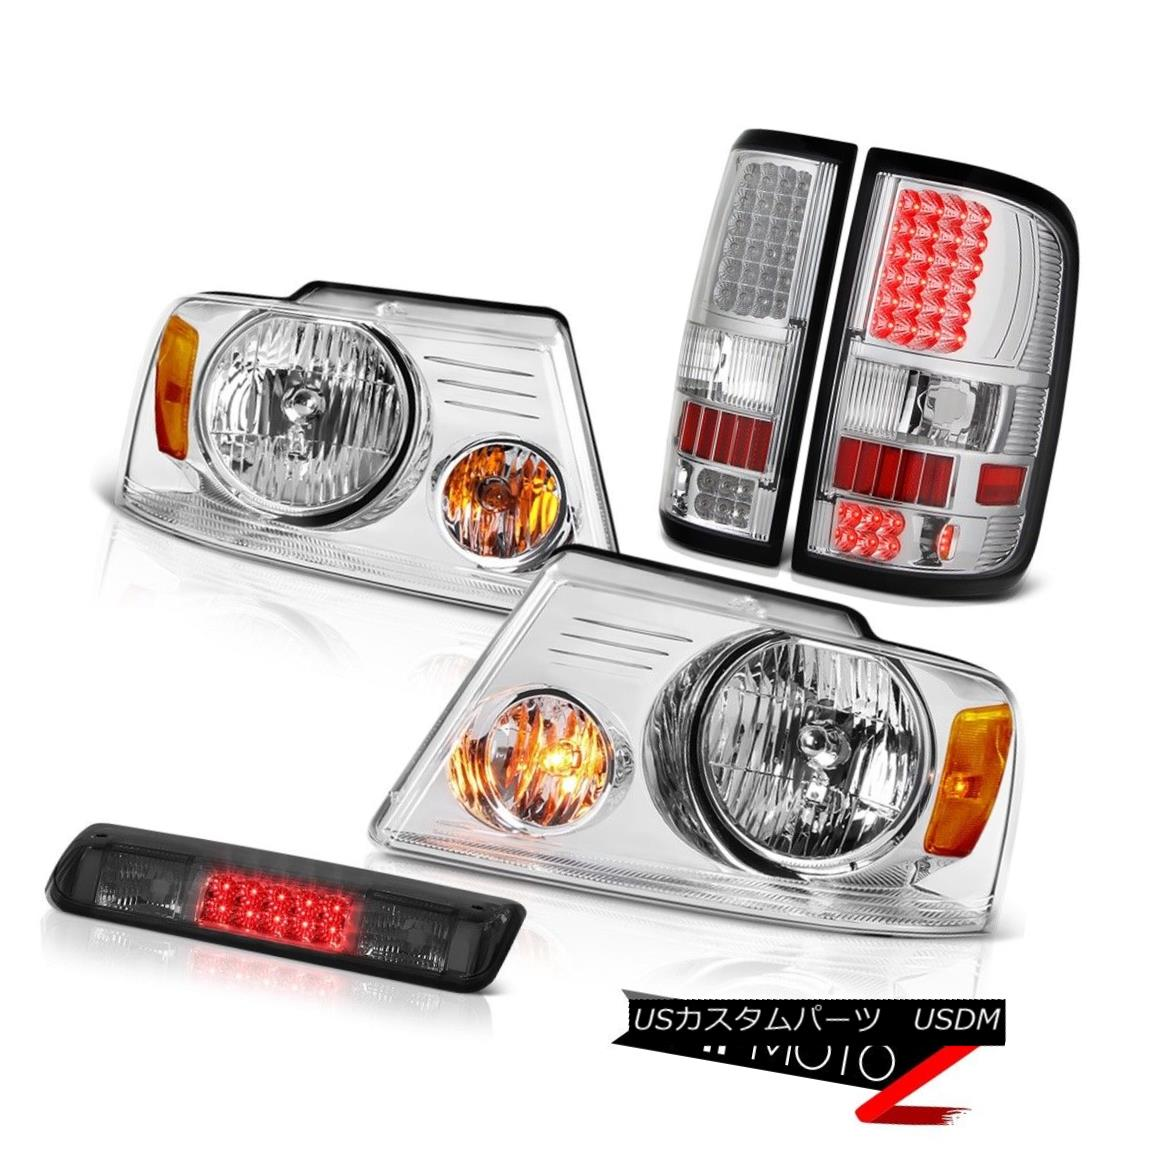 REAR BACK LIGHT LAMP LH LEFT N//S LENS FOR FORD RANGER THUNDER 2003-2005 2004